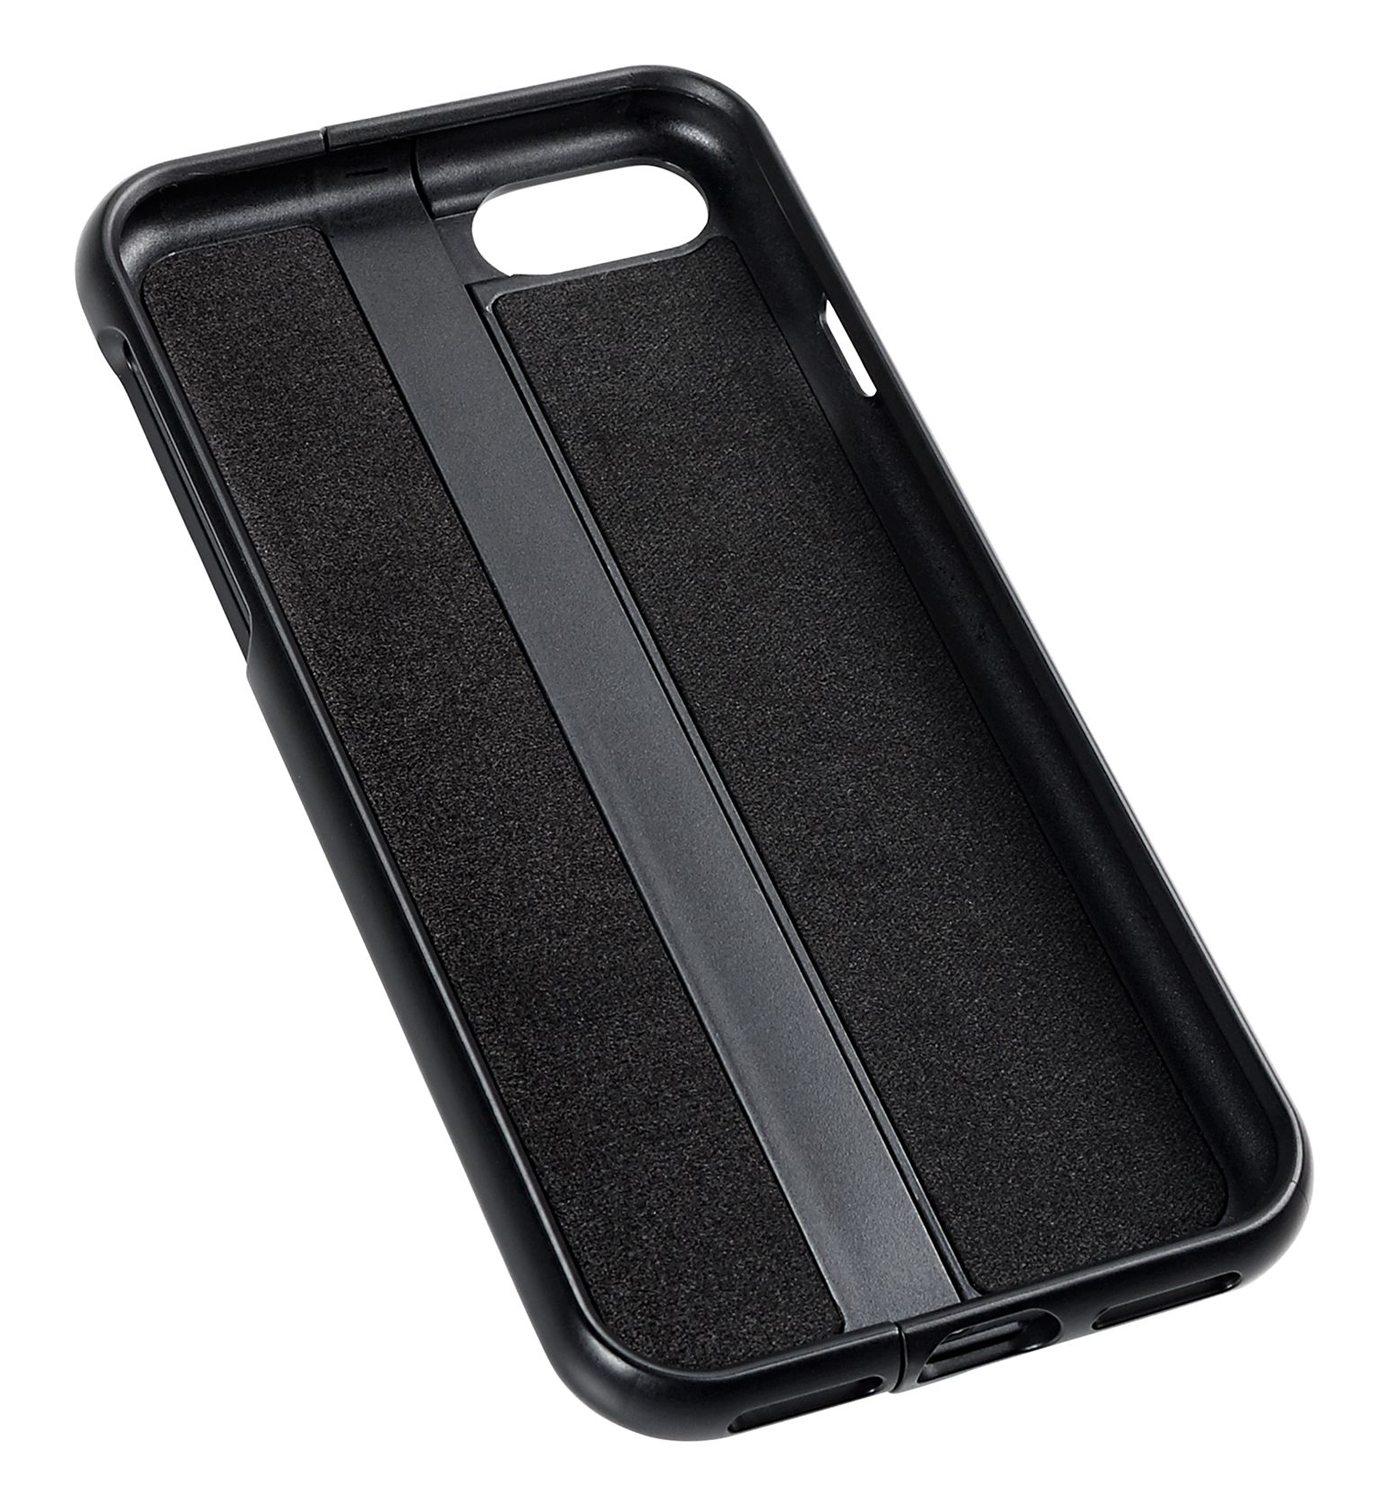 A6020 Slim Armor Hitam Free Holder Gurita Source · Power Bank Casing. Source · Case